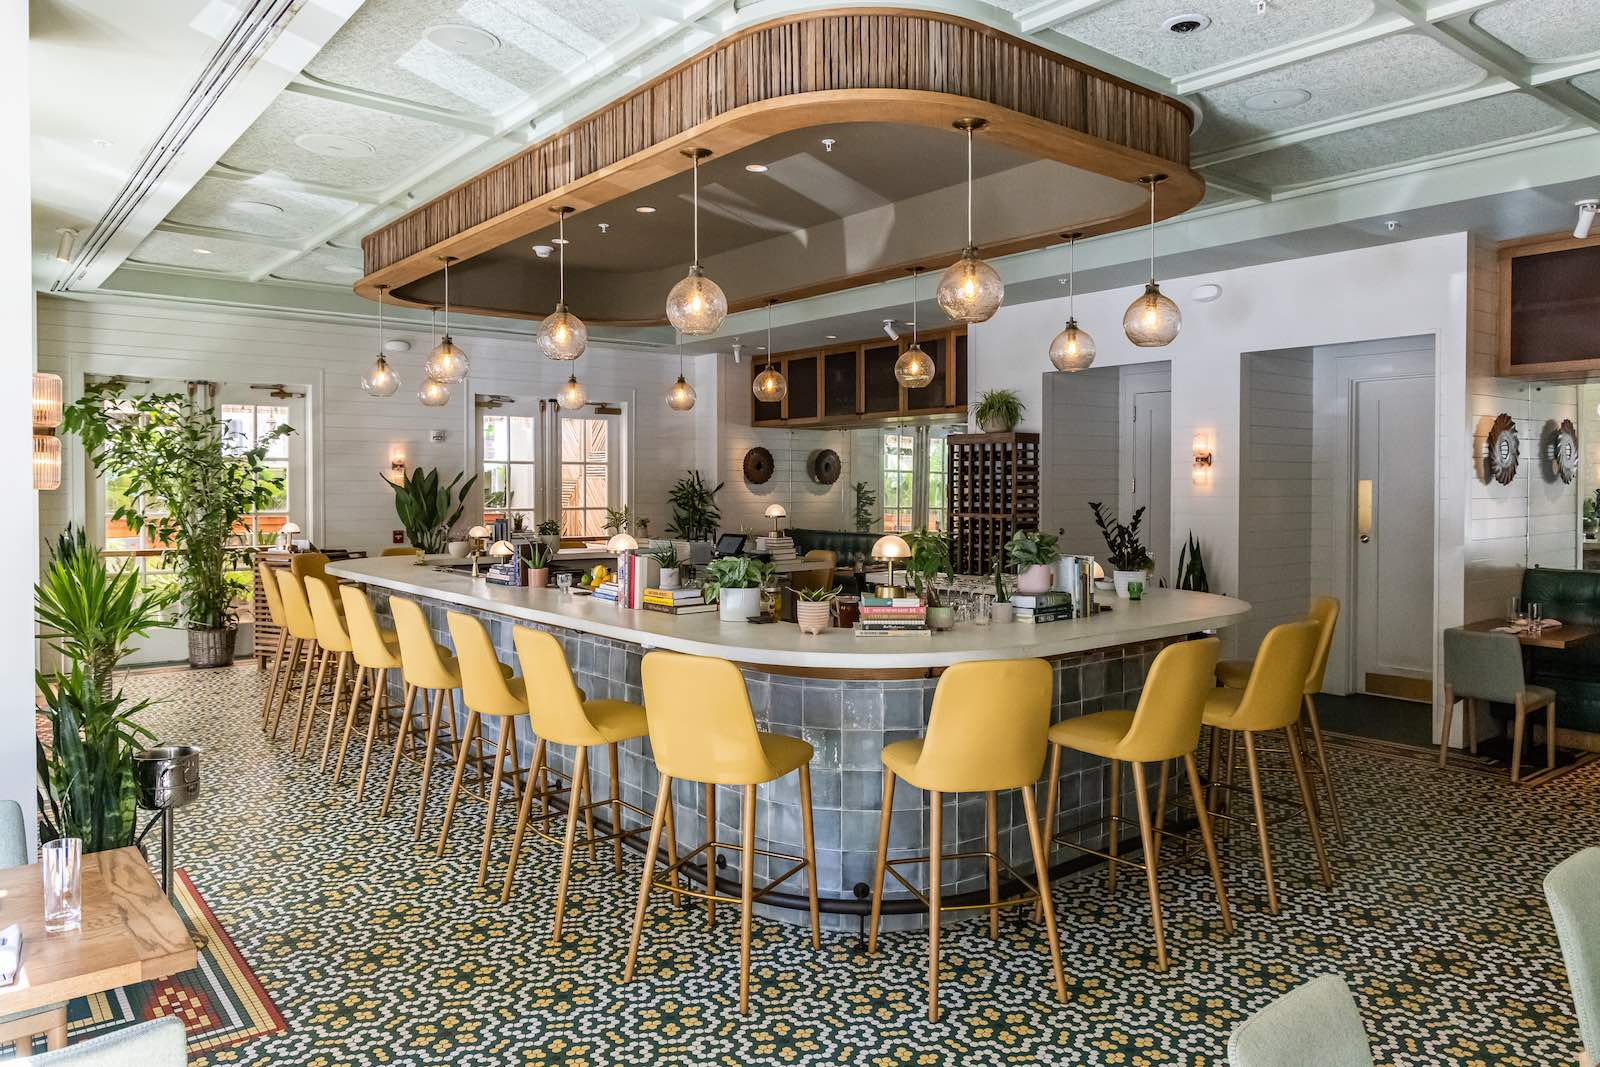 The dining room at Lenoir, built around the big white-topped bar, brings a fresh new perspective to Lowcountry dining